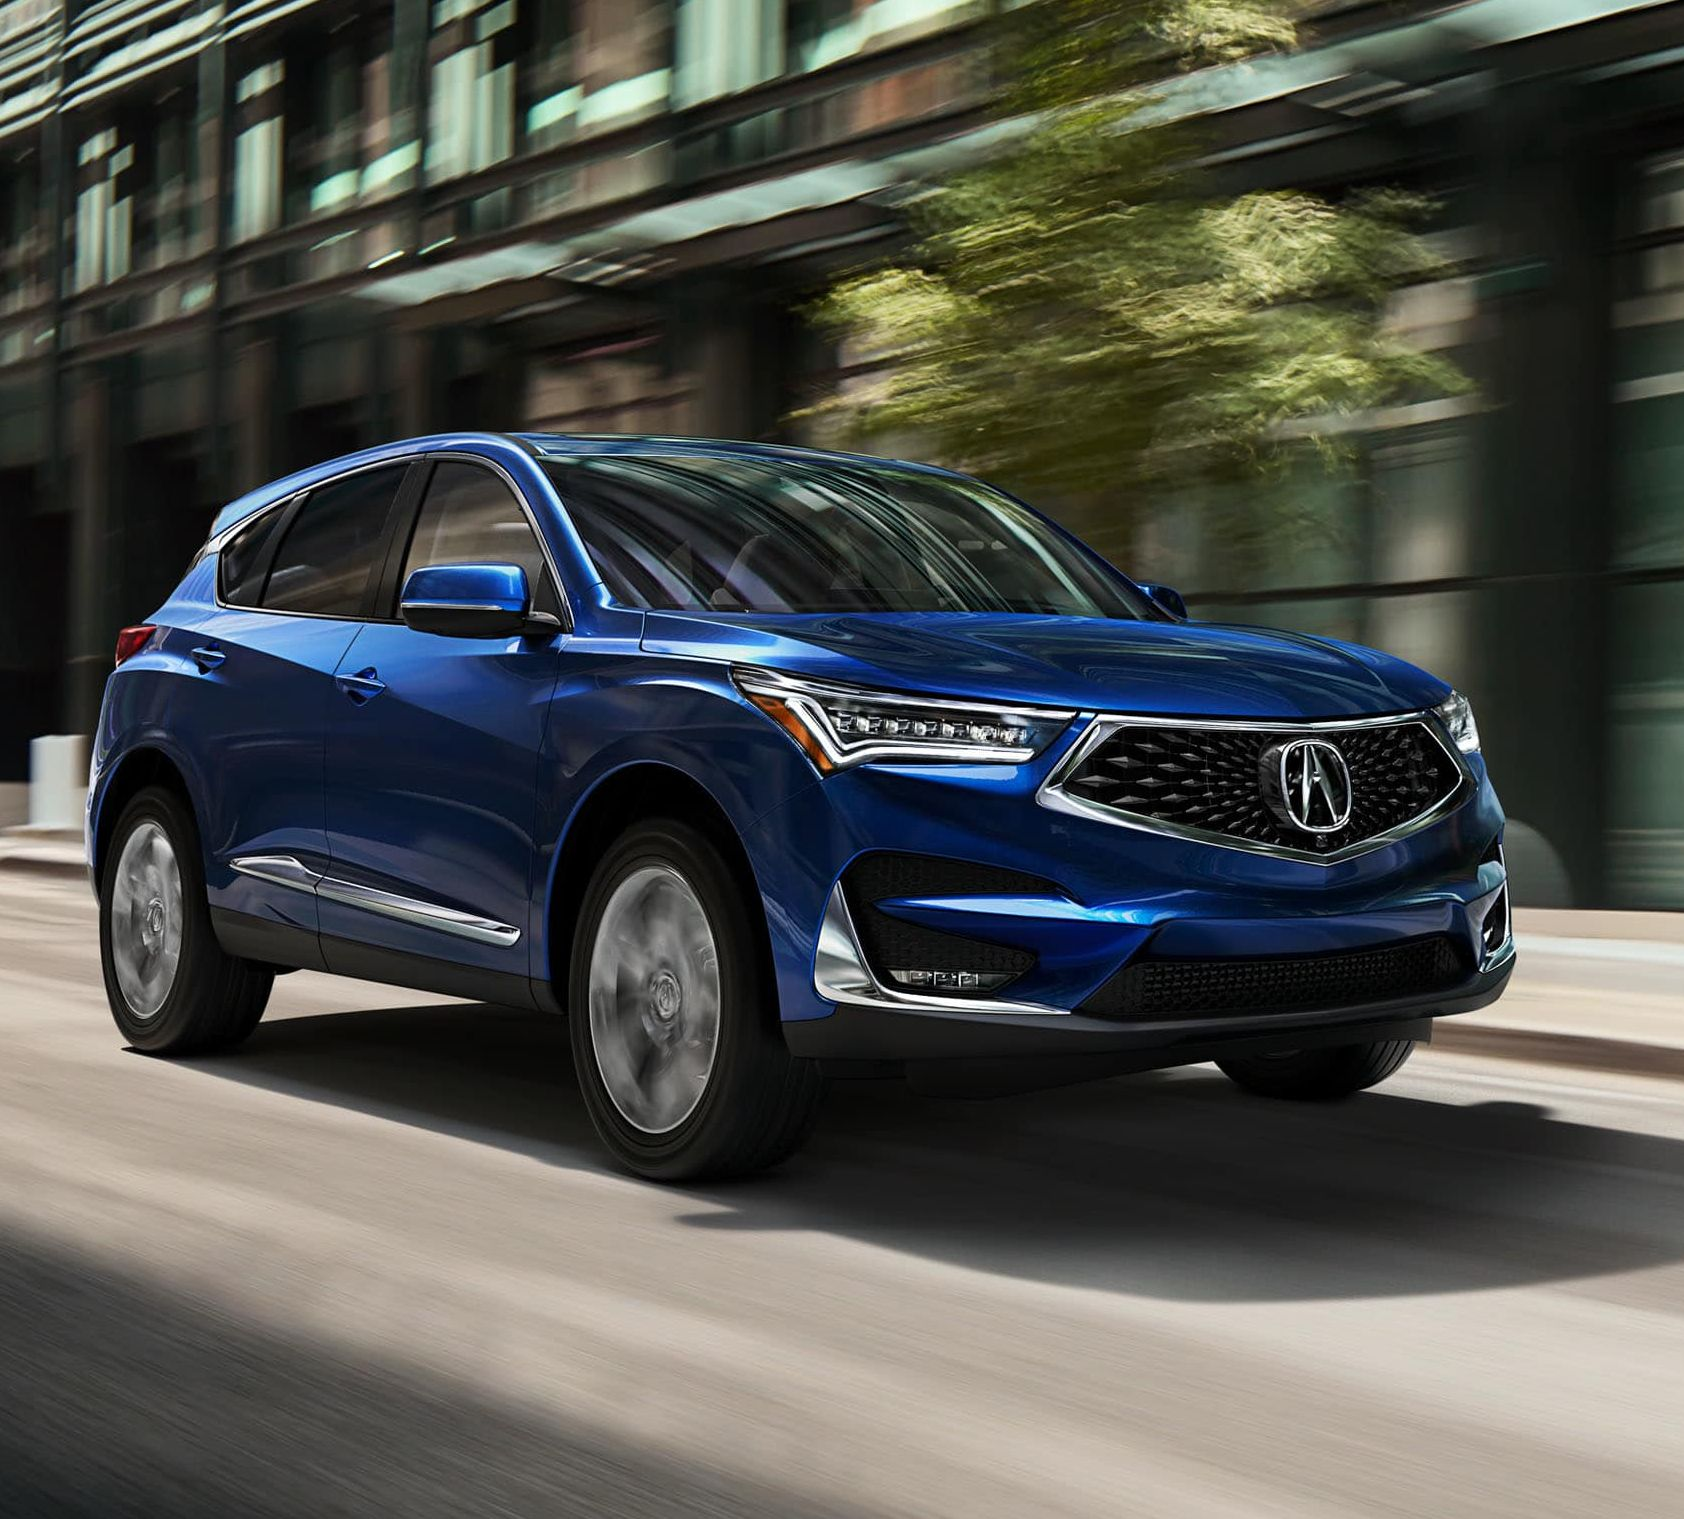 2019 Acura RDX For Sale Near Kingsport, TN